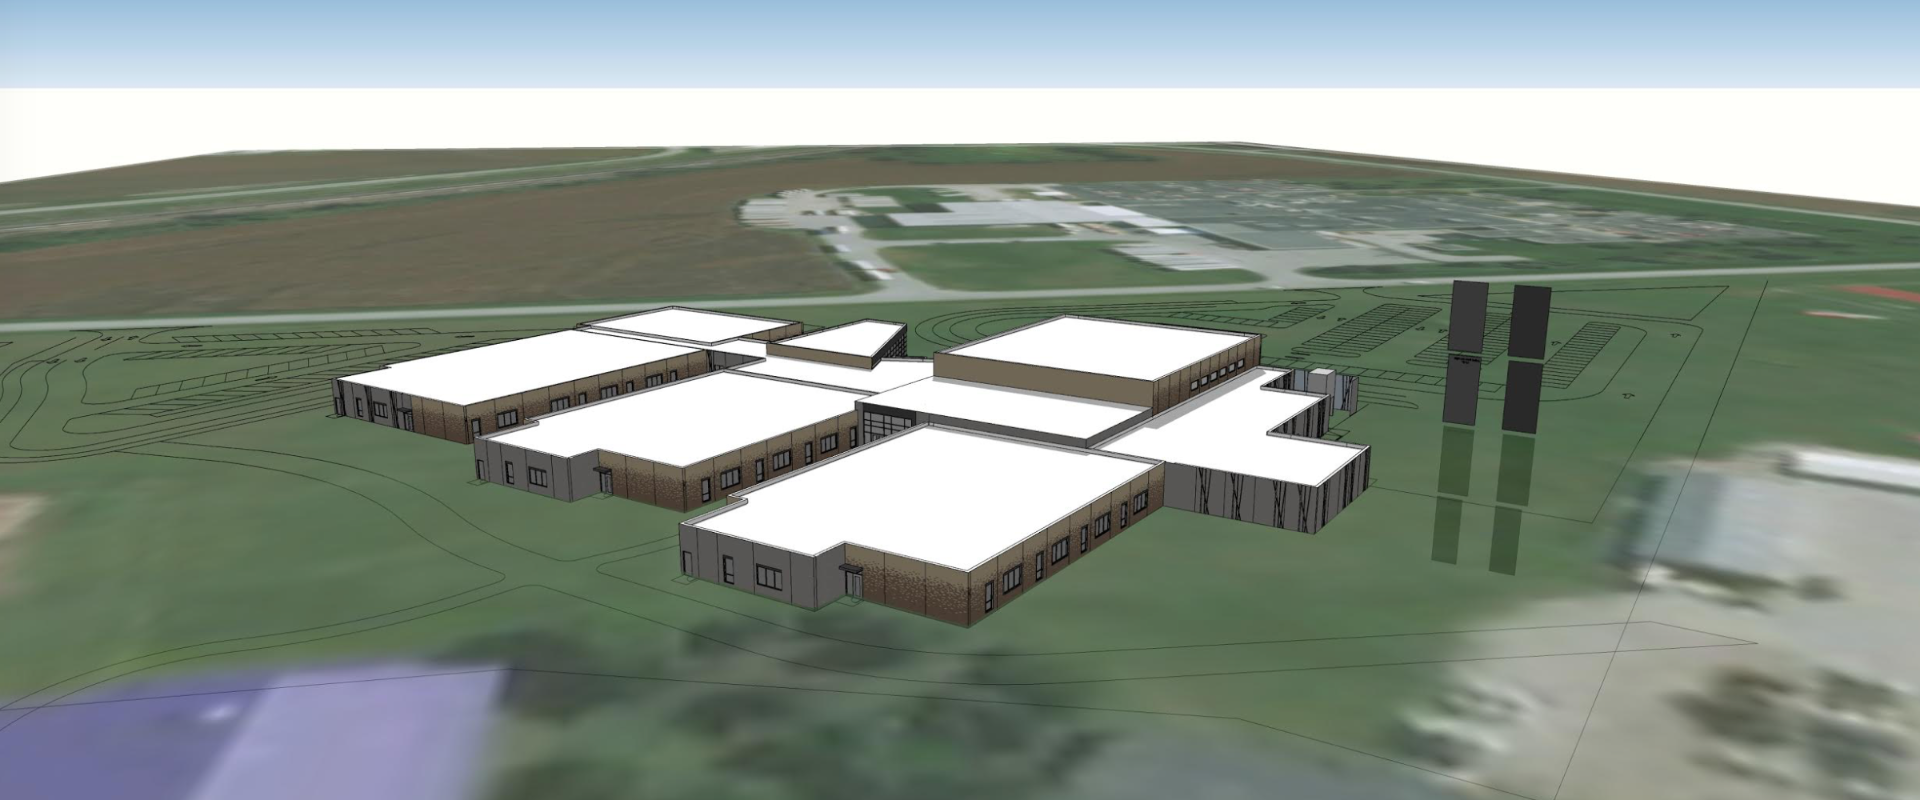 Exterior Pictures of the New DC West Elementary School